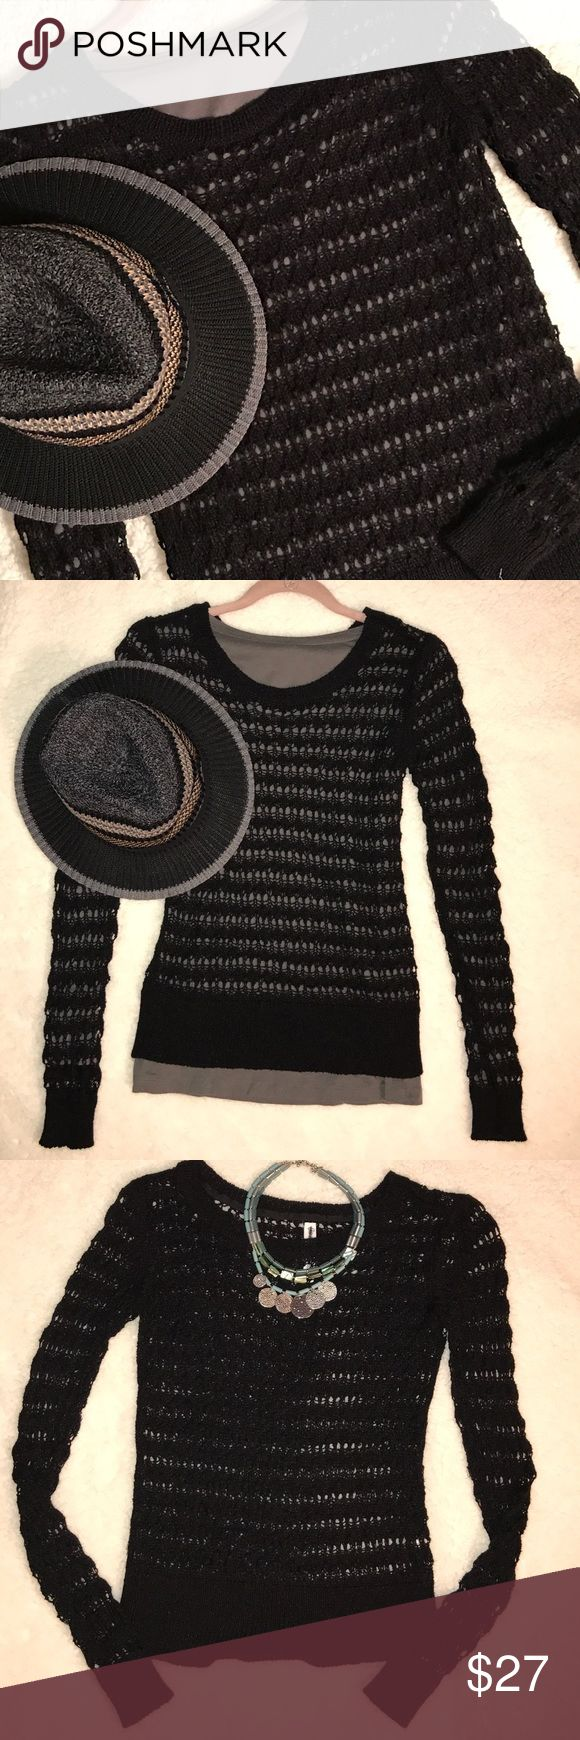 """Aeropostale long sleeve black crochet sweater top. Aeropostale black crochet sweater. Soo cute with a cami or other long sleeve shirts with jeans and skirts. Photos show with and without camisole. Label says XS but fits more like a larger small if there is such a thing. 😎 Length from neck shoulder area is 22"""". Sleeve length from shoulder 24 1/2"""". Lots of stretch to it. 48% acrylic 27% cotton 15% nylon 10% polyester. Machine wash cold. Great pre-owned condition. 💖 Aeropostale Sweaters Crew…"""